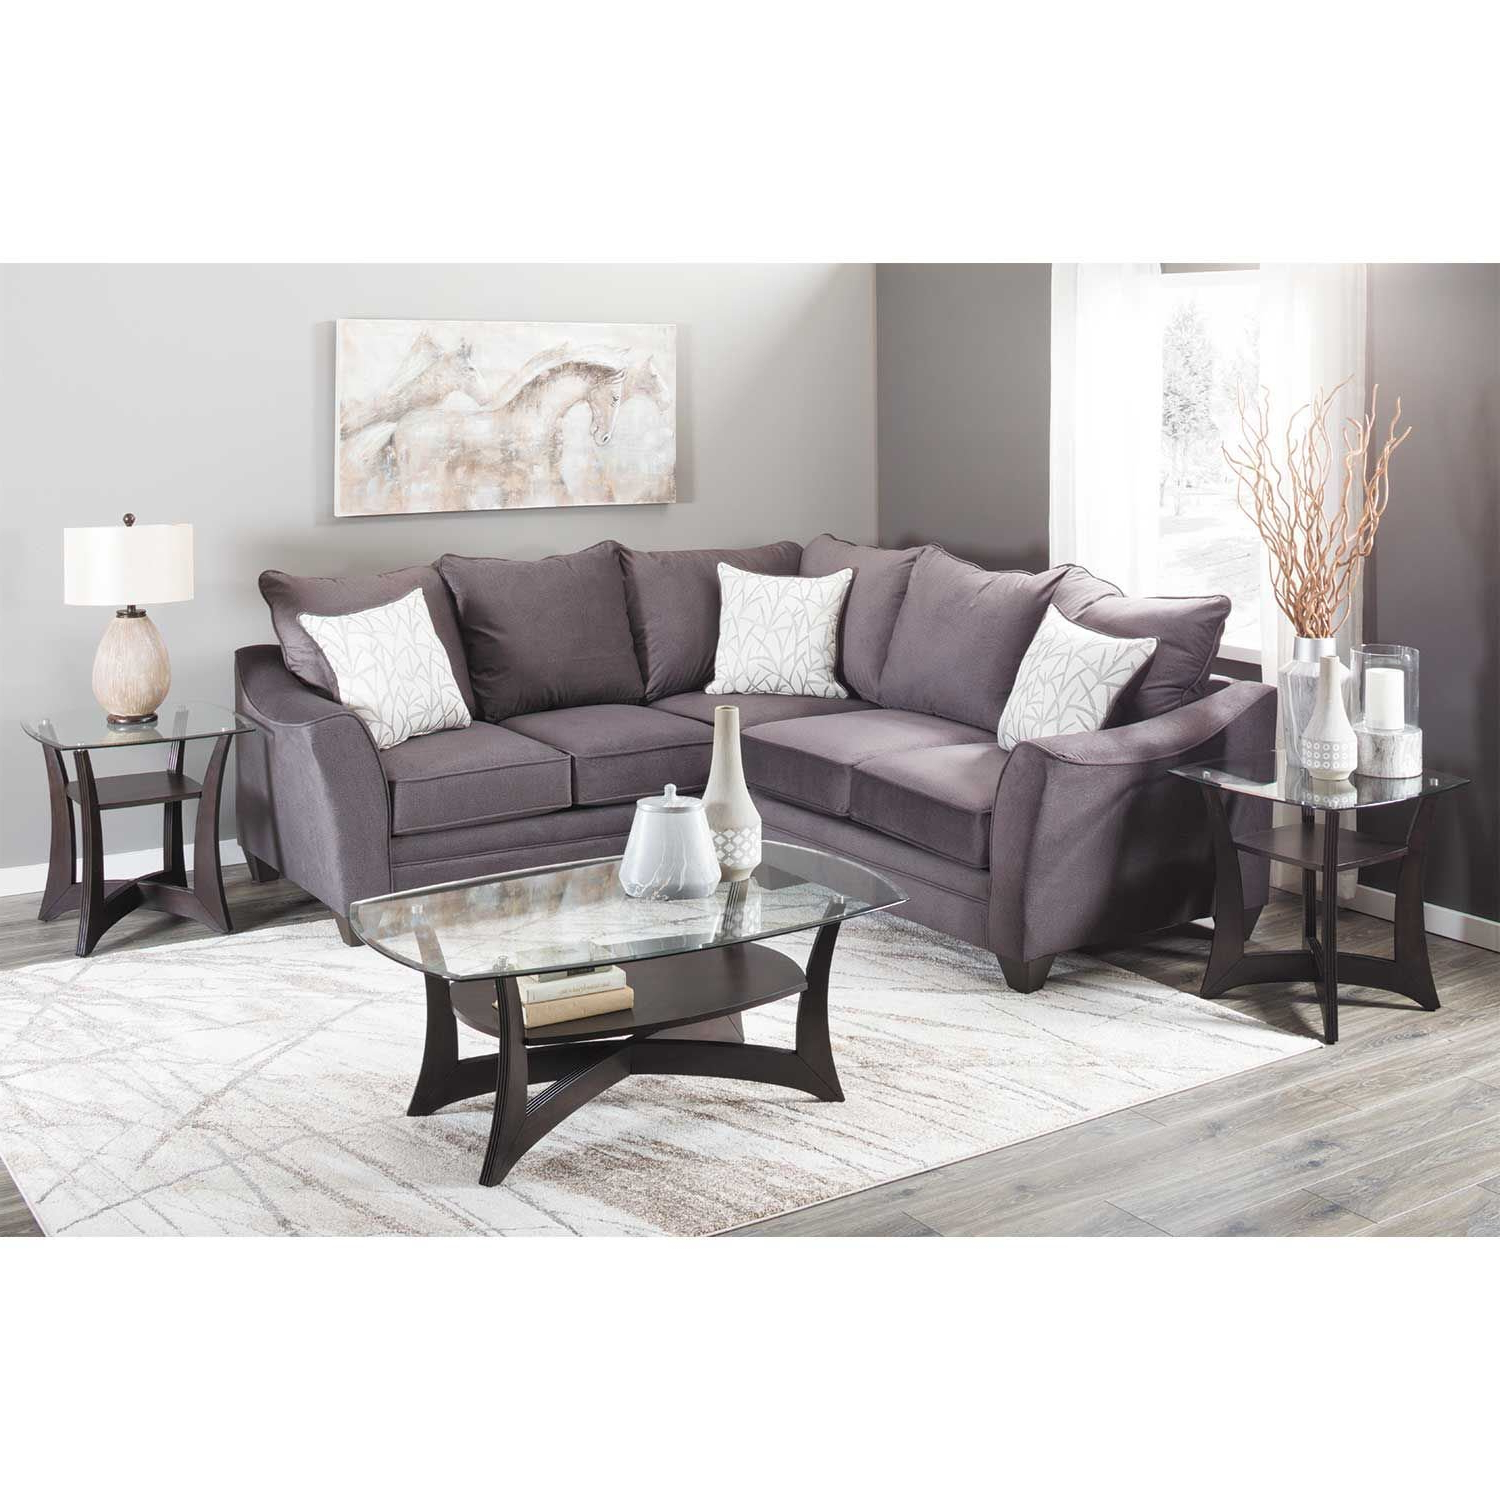 American Inside Cosmos Grey 2 Piece Sectionals With Laf Chaise (Gallery 7 of 20)